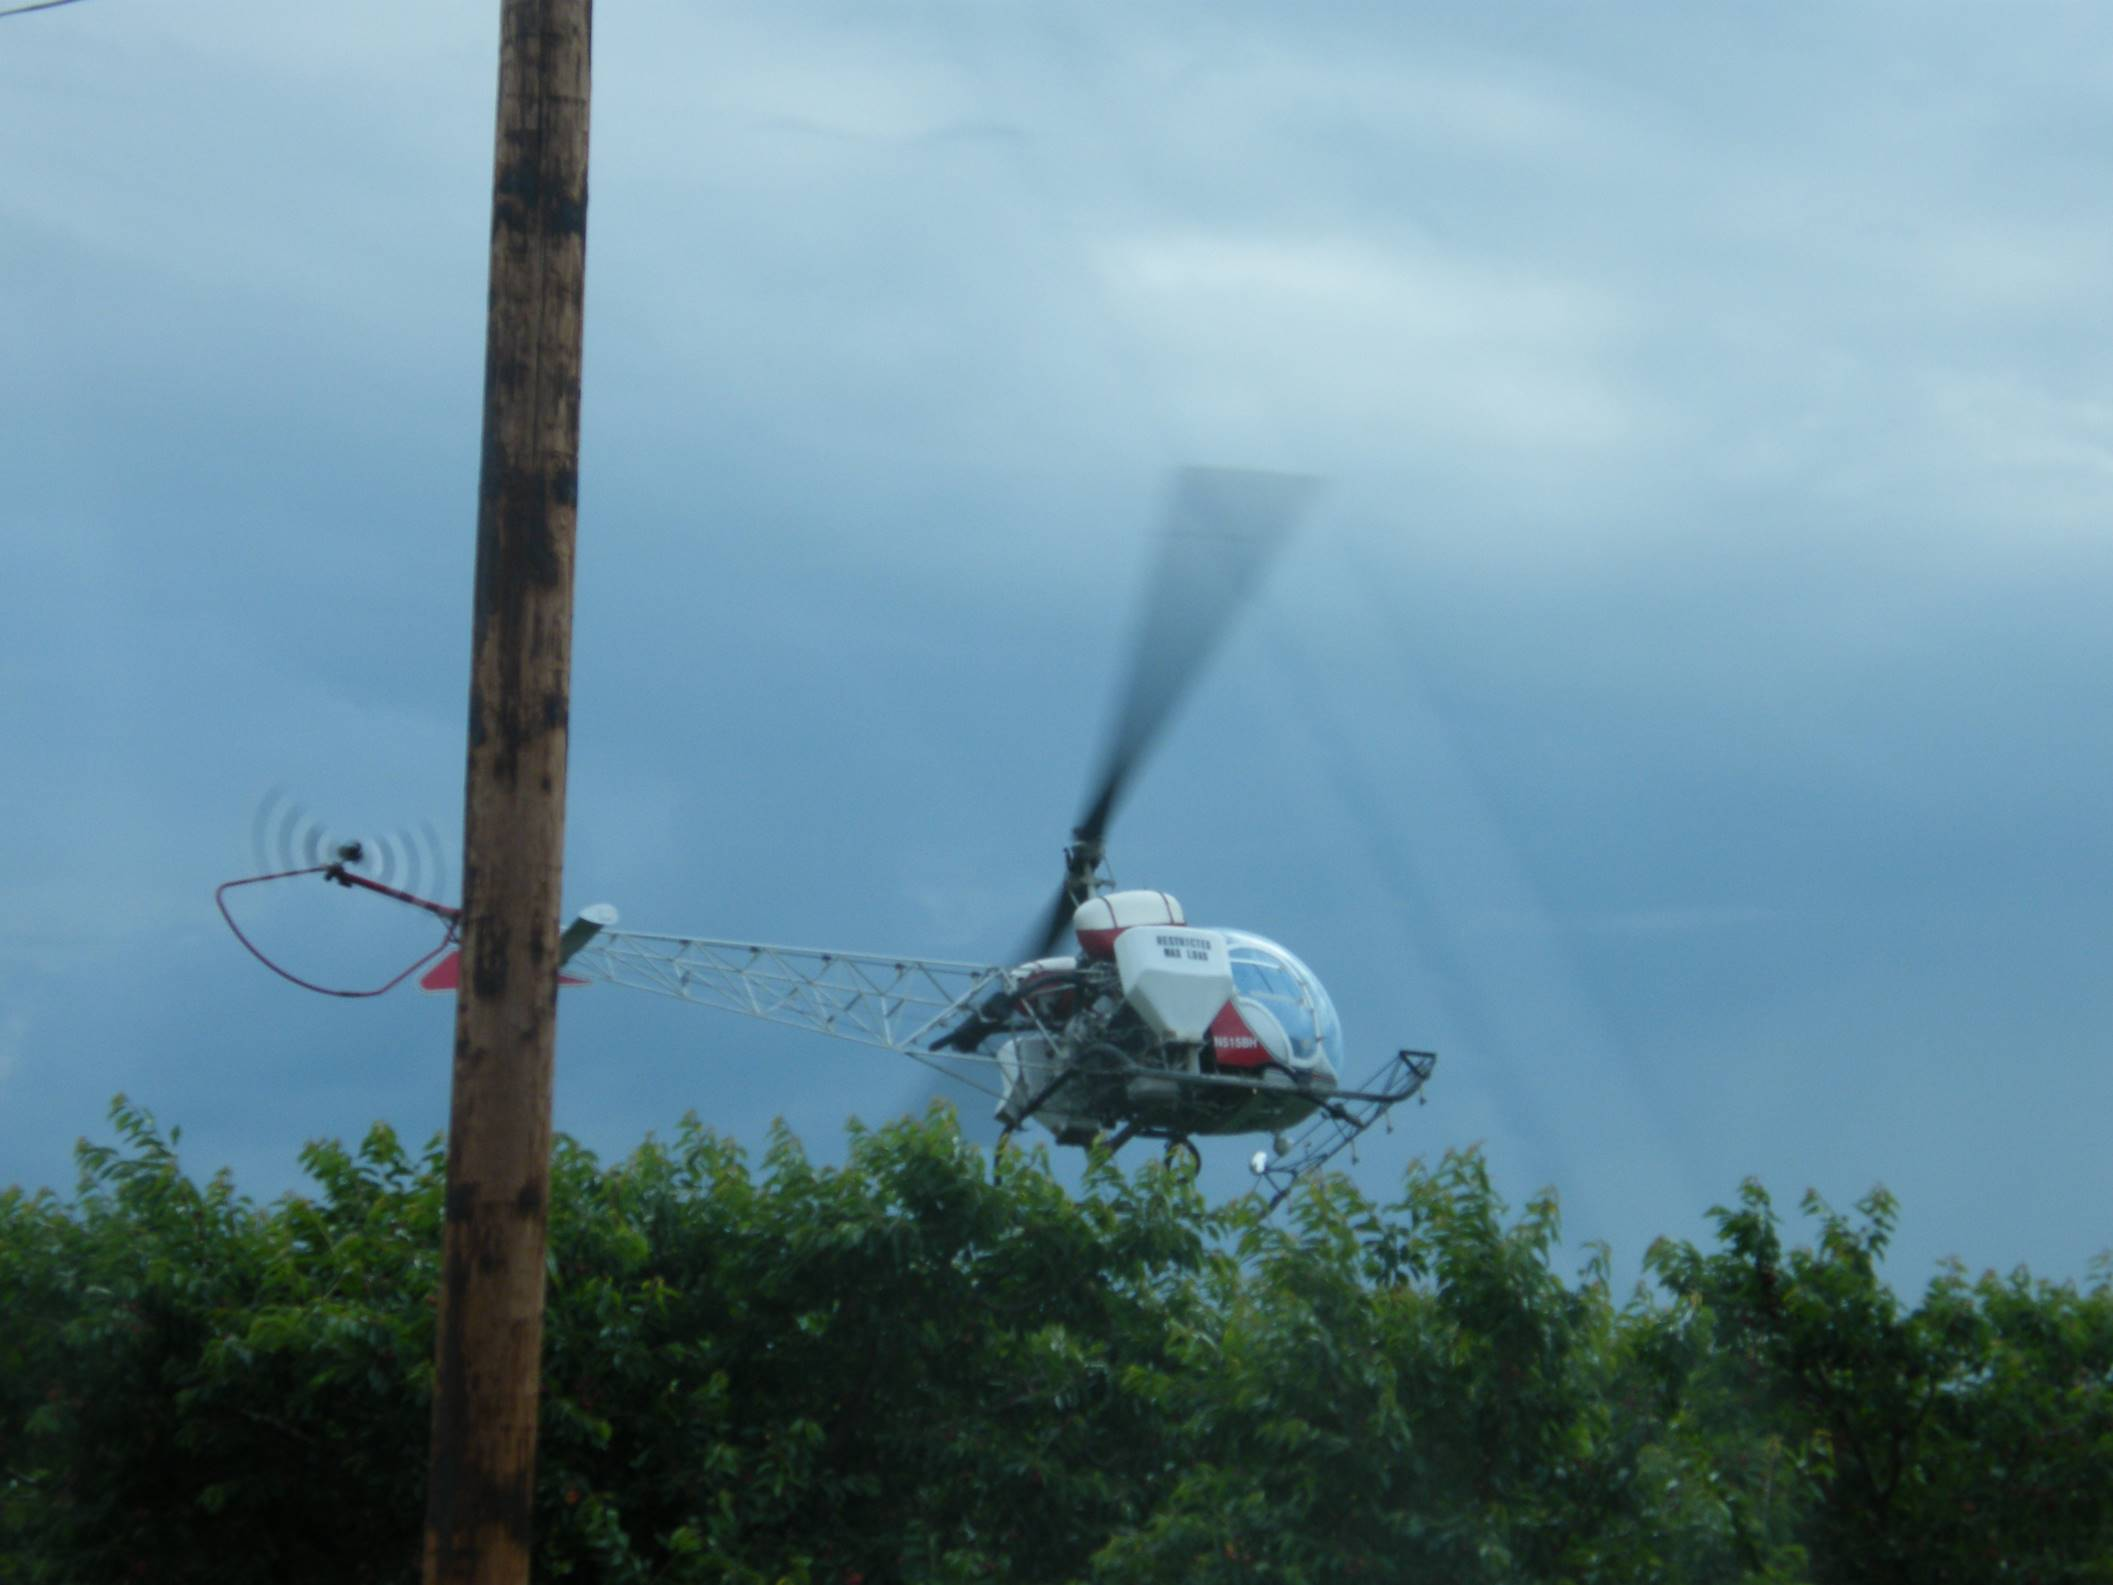 A helicopter is used to dry fruit after a rainfall in Milton Freewater, Oregon.